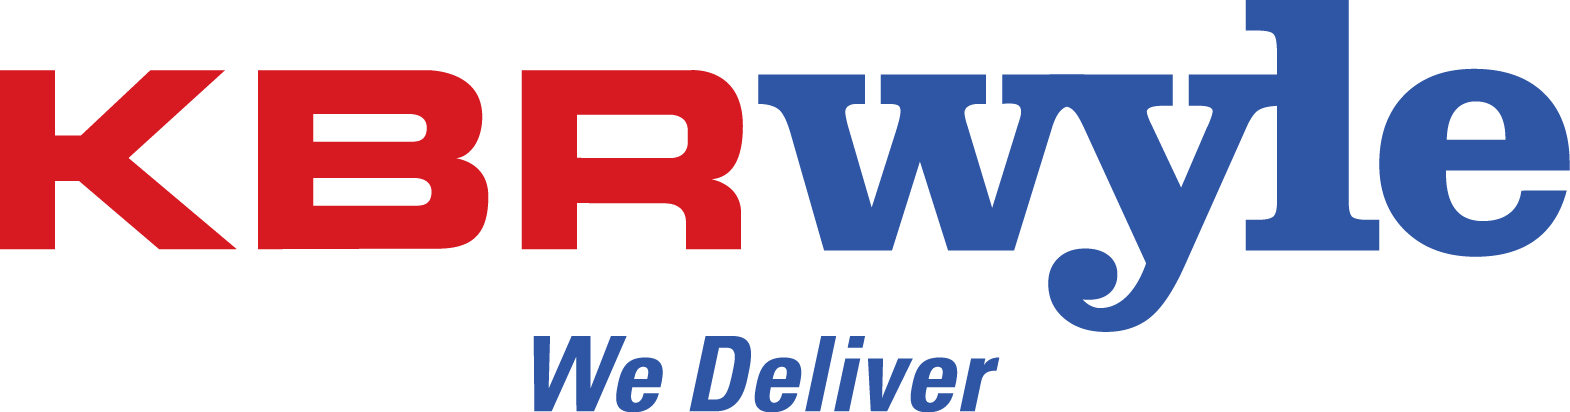 KBRWyle_We Deliver